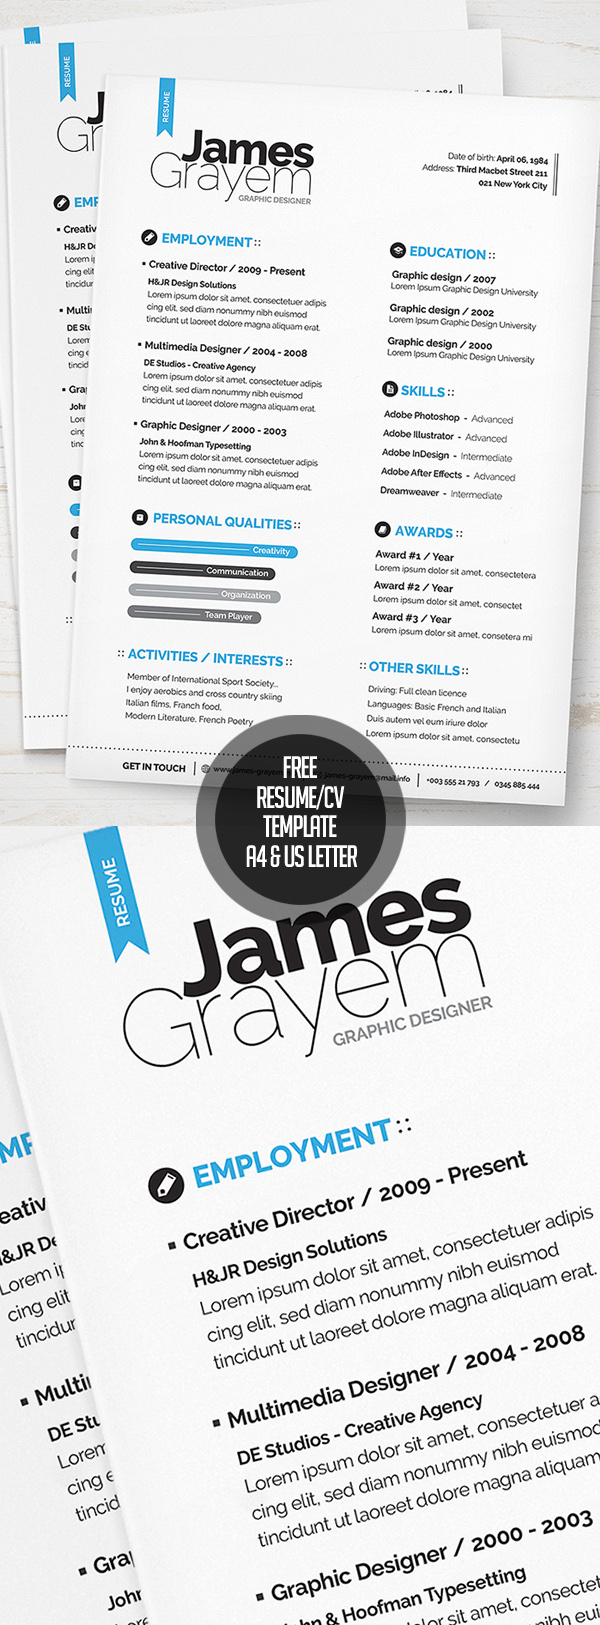 Free Resume / CV Template (A4 & US letter) PSD